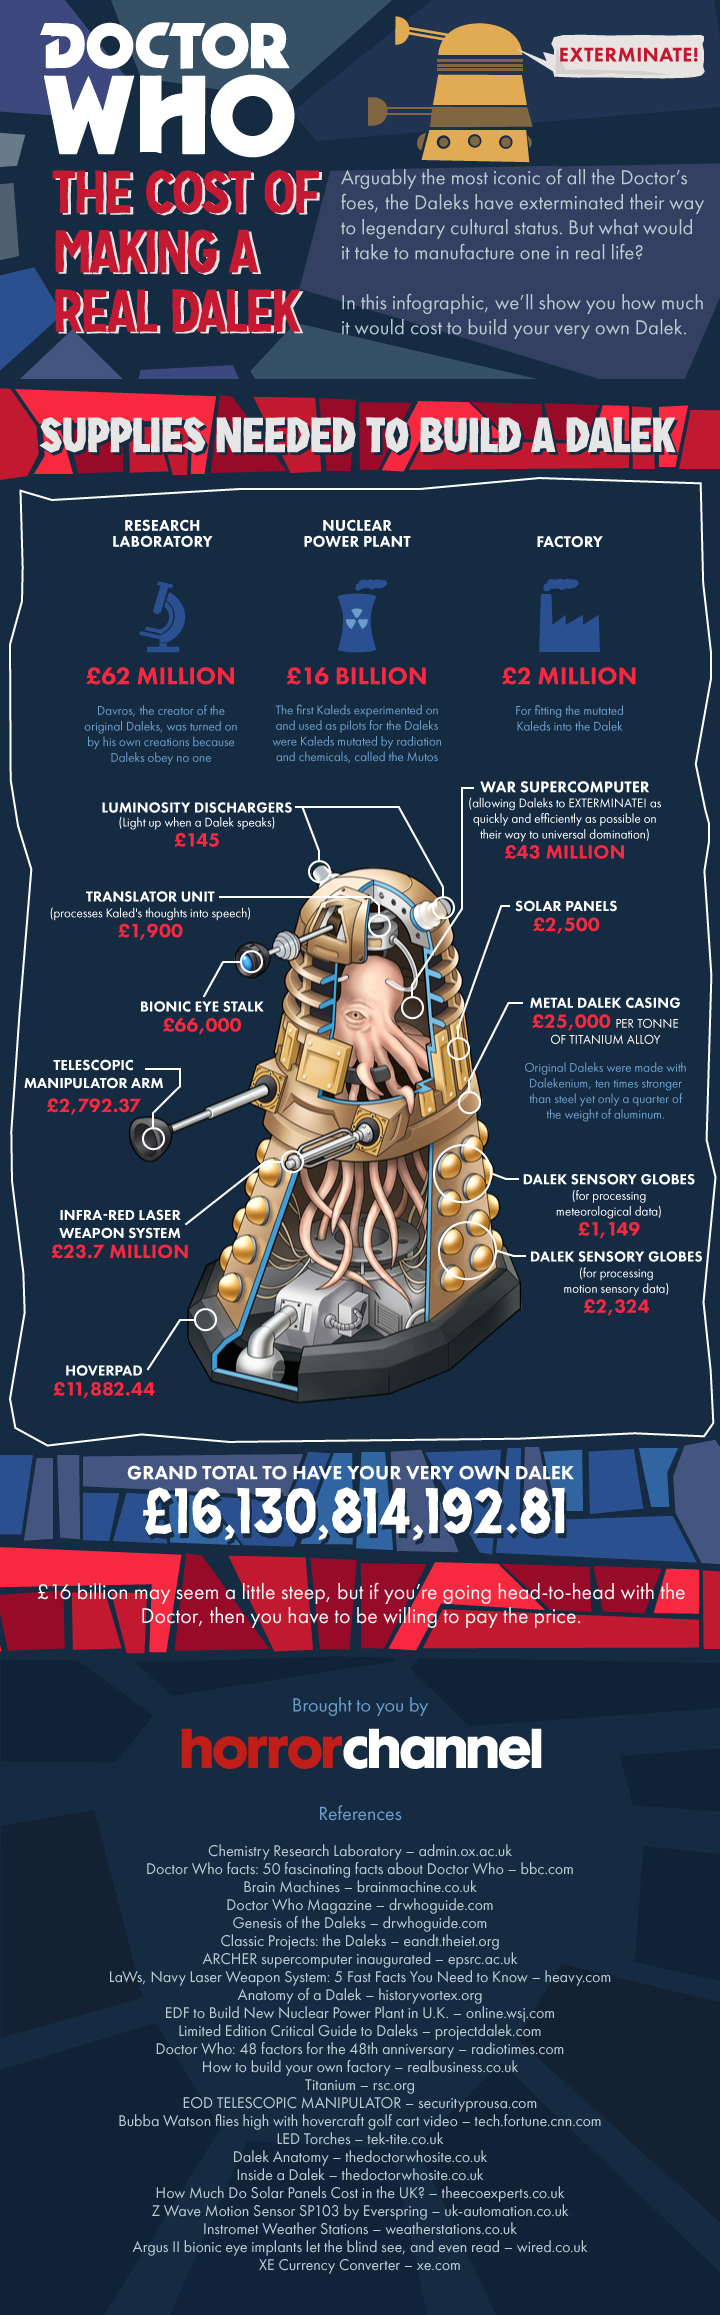 How much would cost to make a real dalek infographic